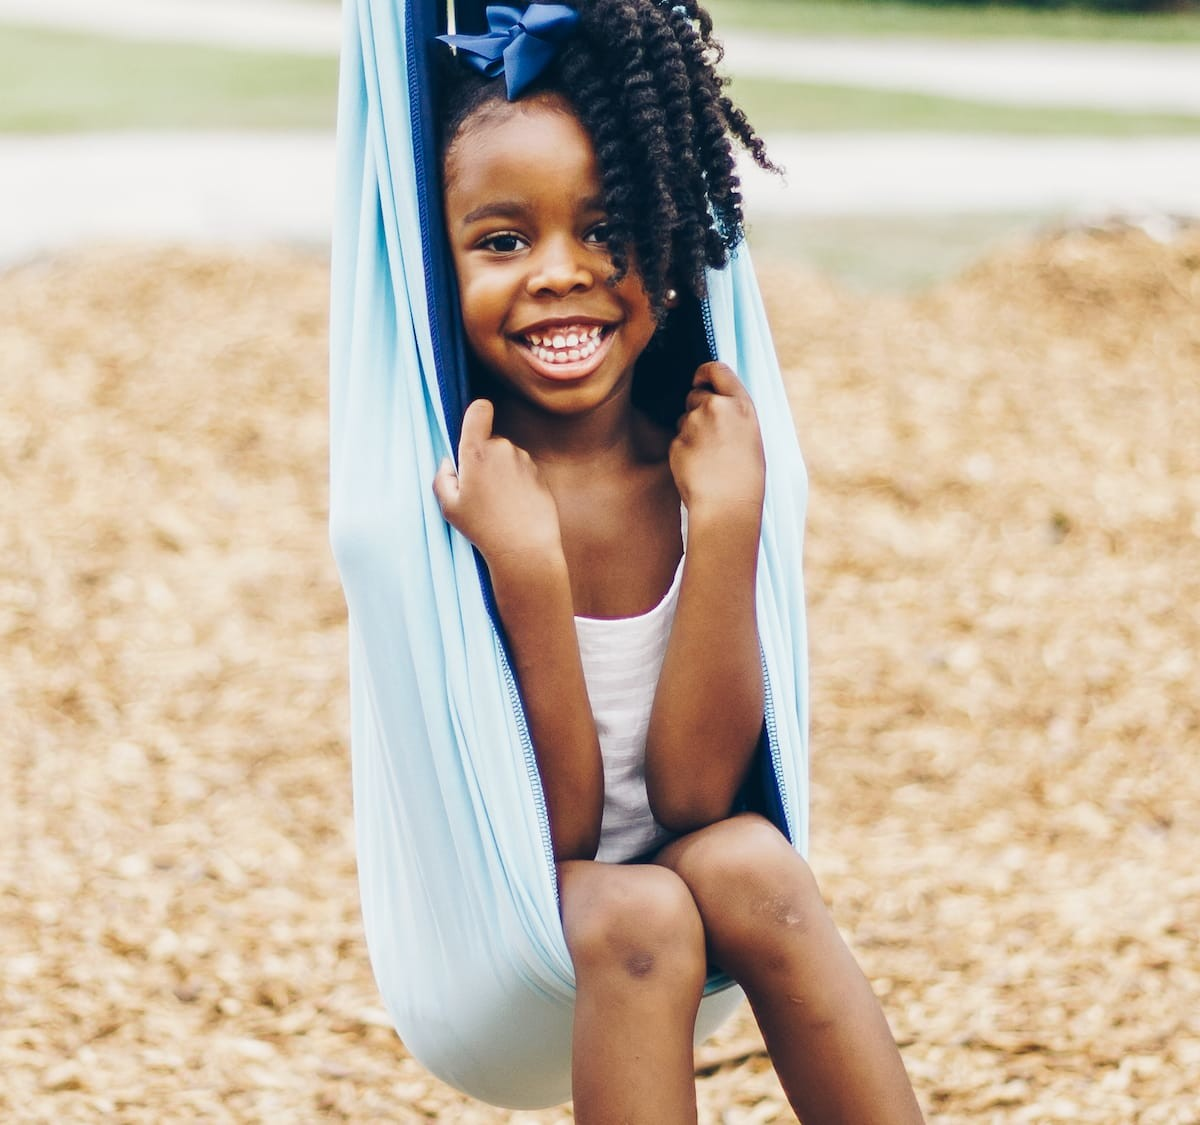 Sensory Jungle Compression Swing offers a gentle hug for spatial and balance awareness